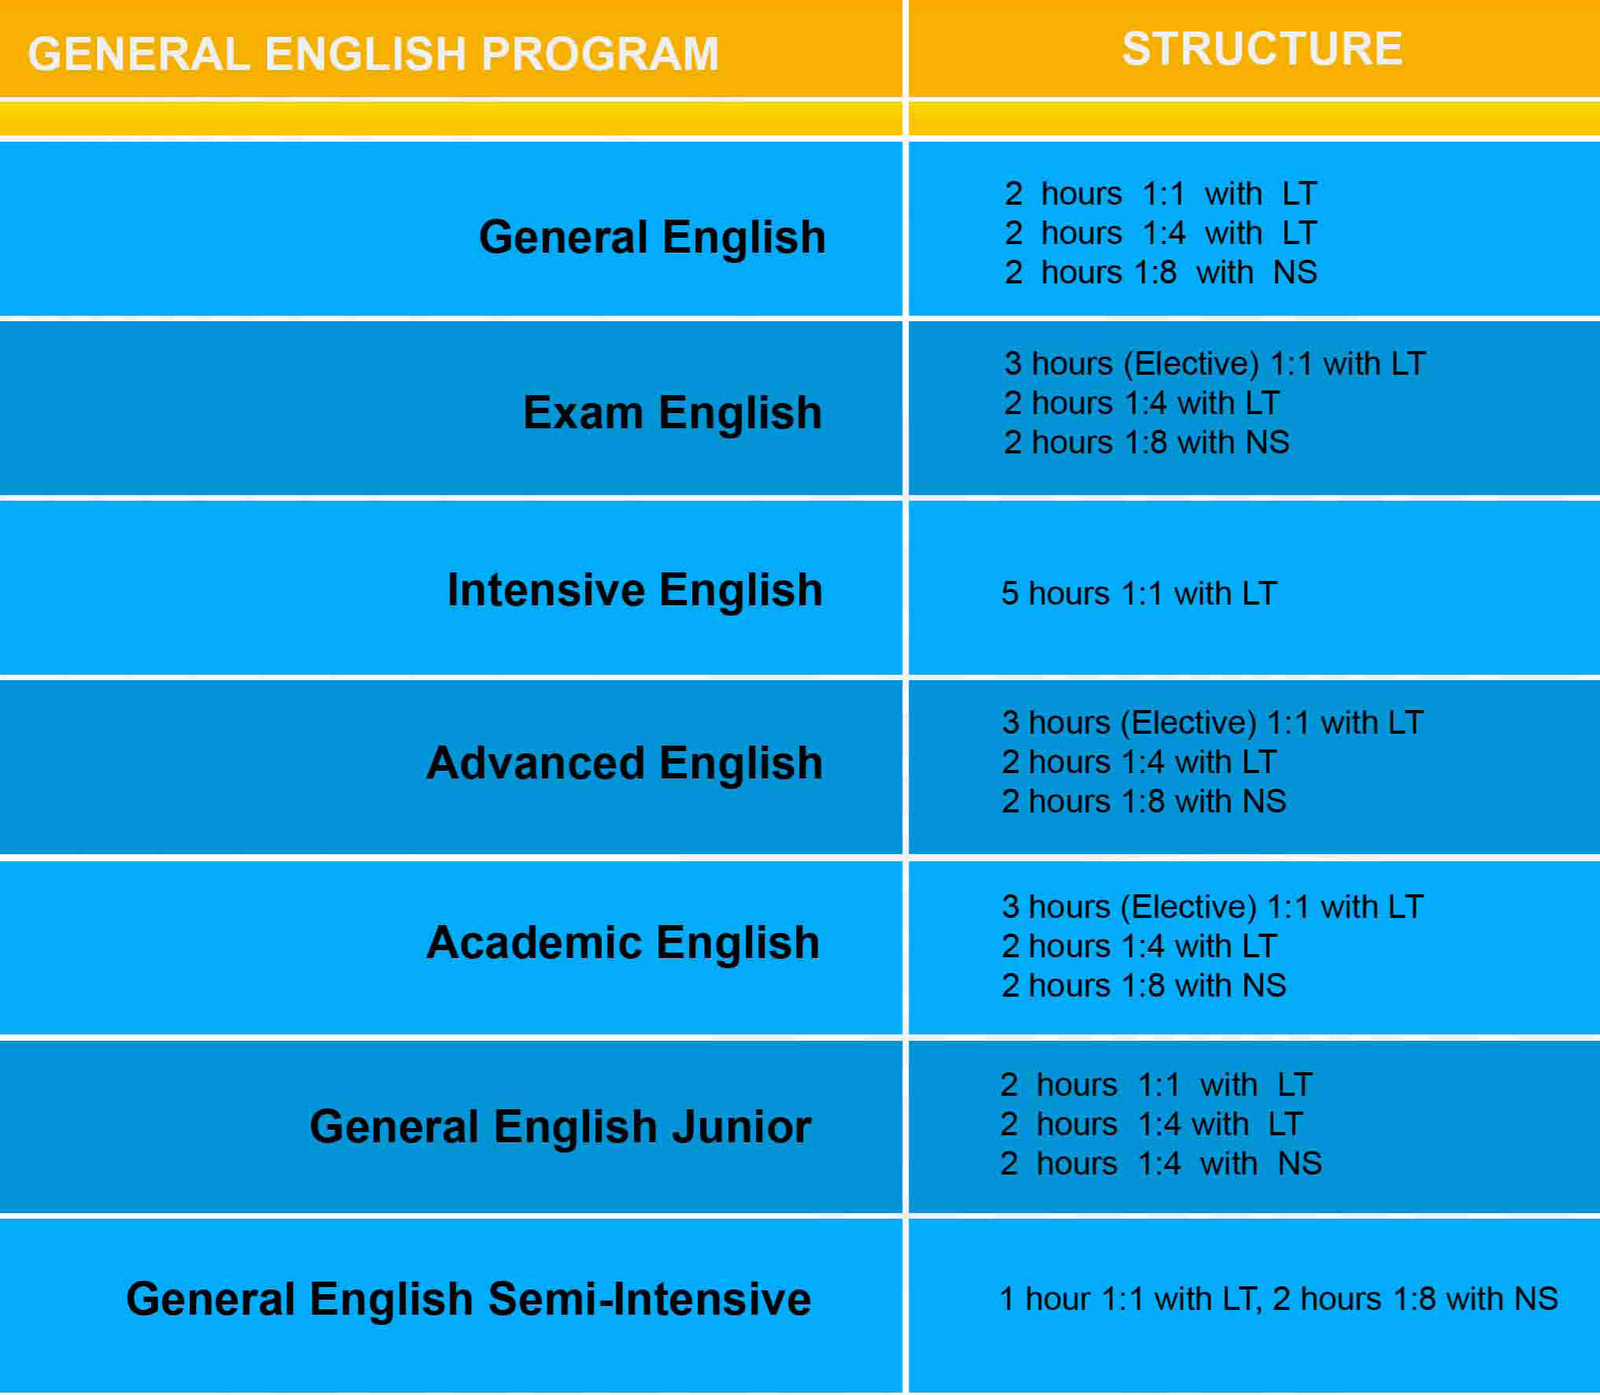 english second language English as a second language is a starting point for esl learners who want to learn english through the website.